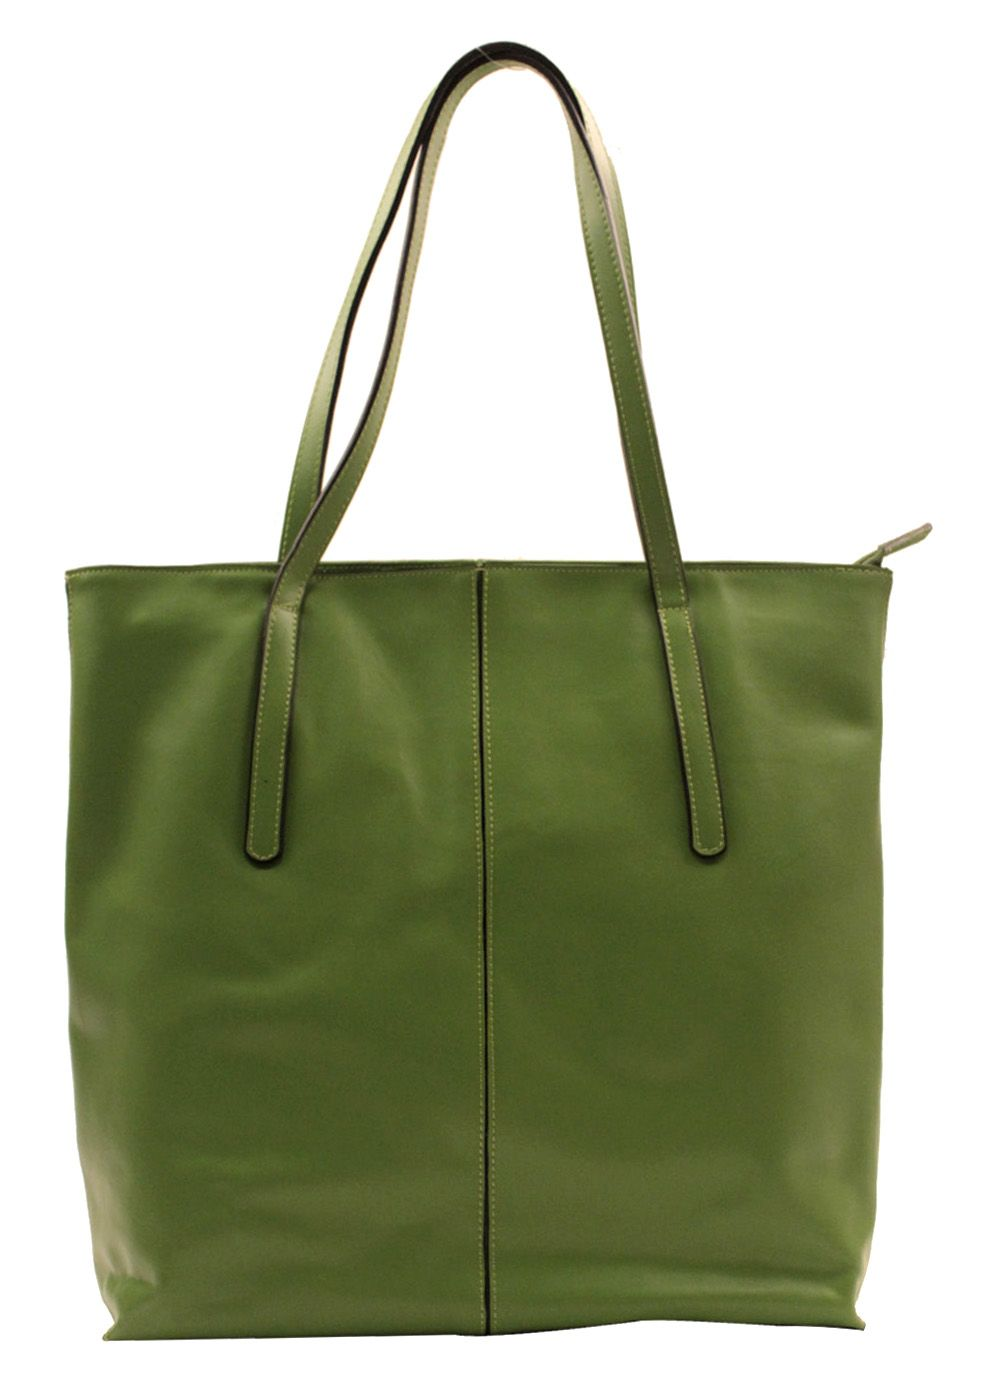 Simple Elegant Calfskin Tote - Green